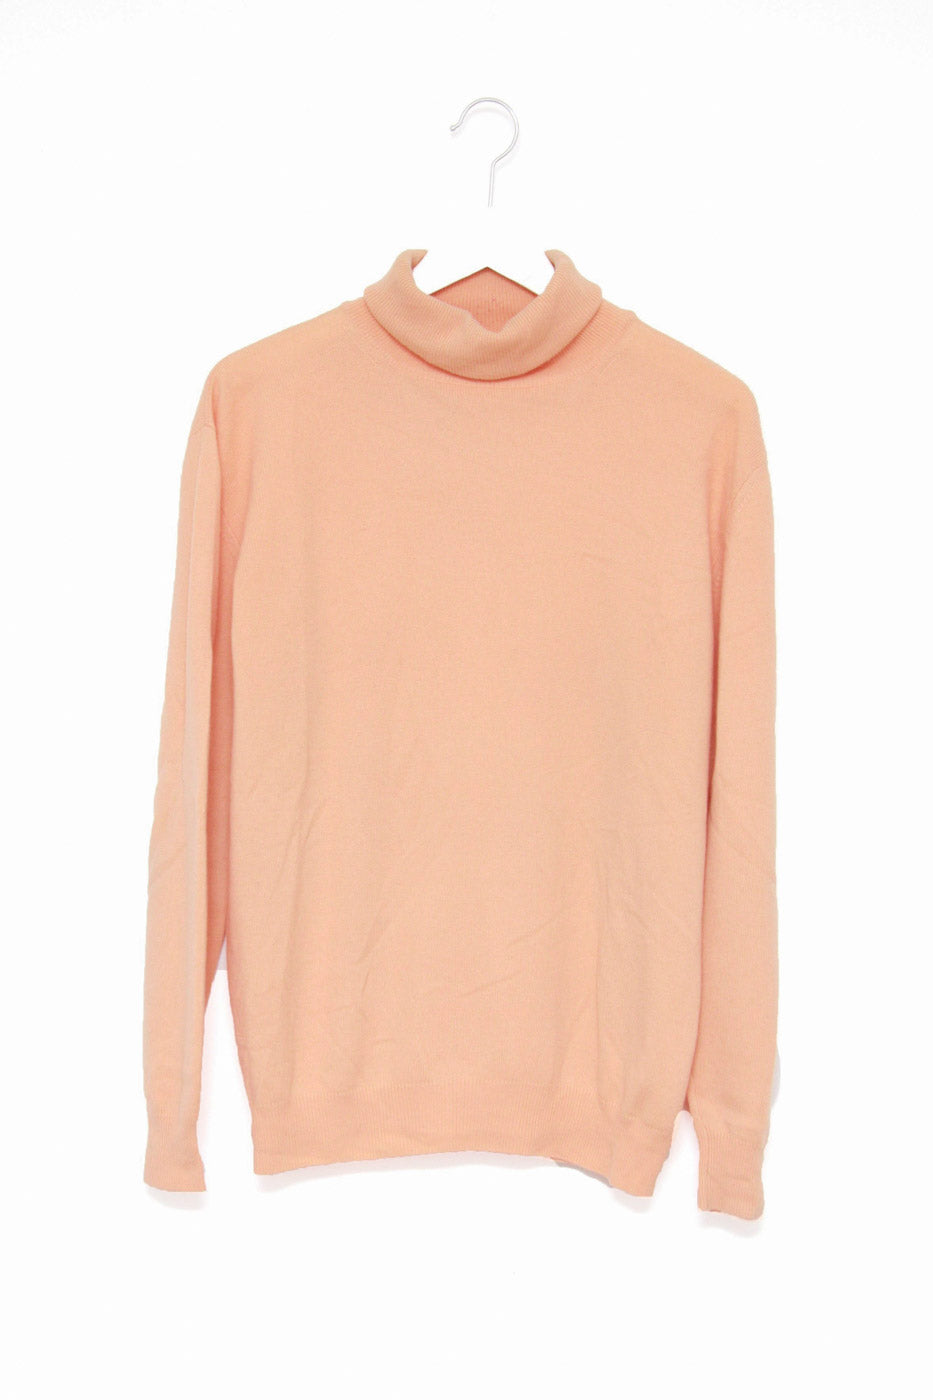 0006_SALMON CASHMERE TURTLE SWEATER